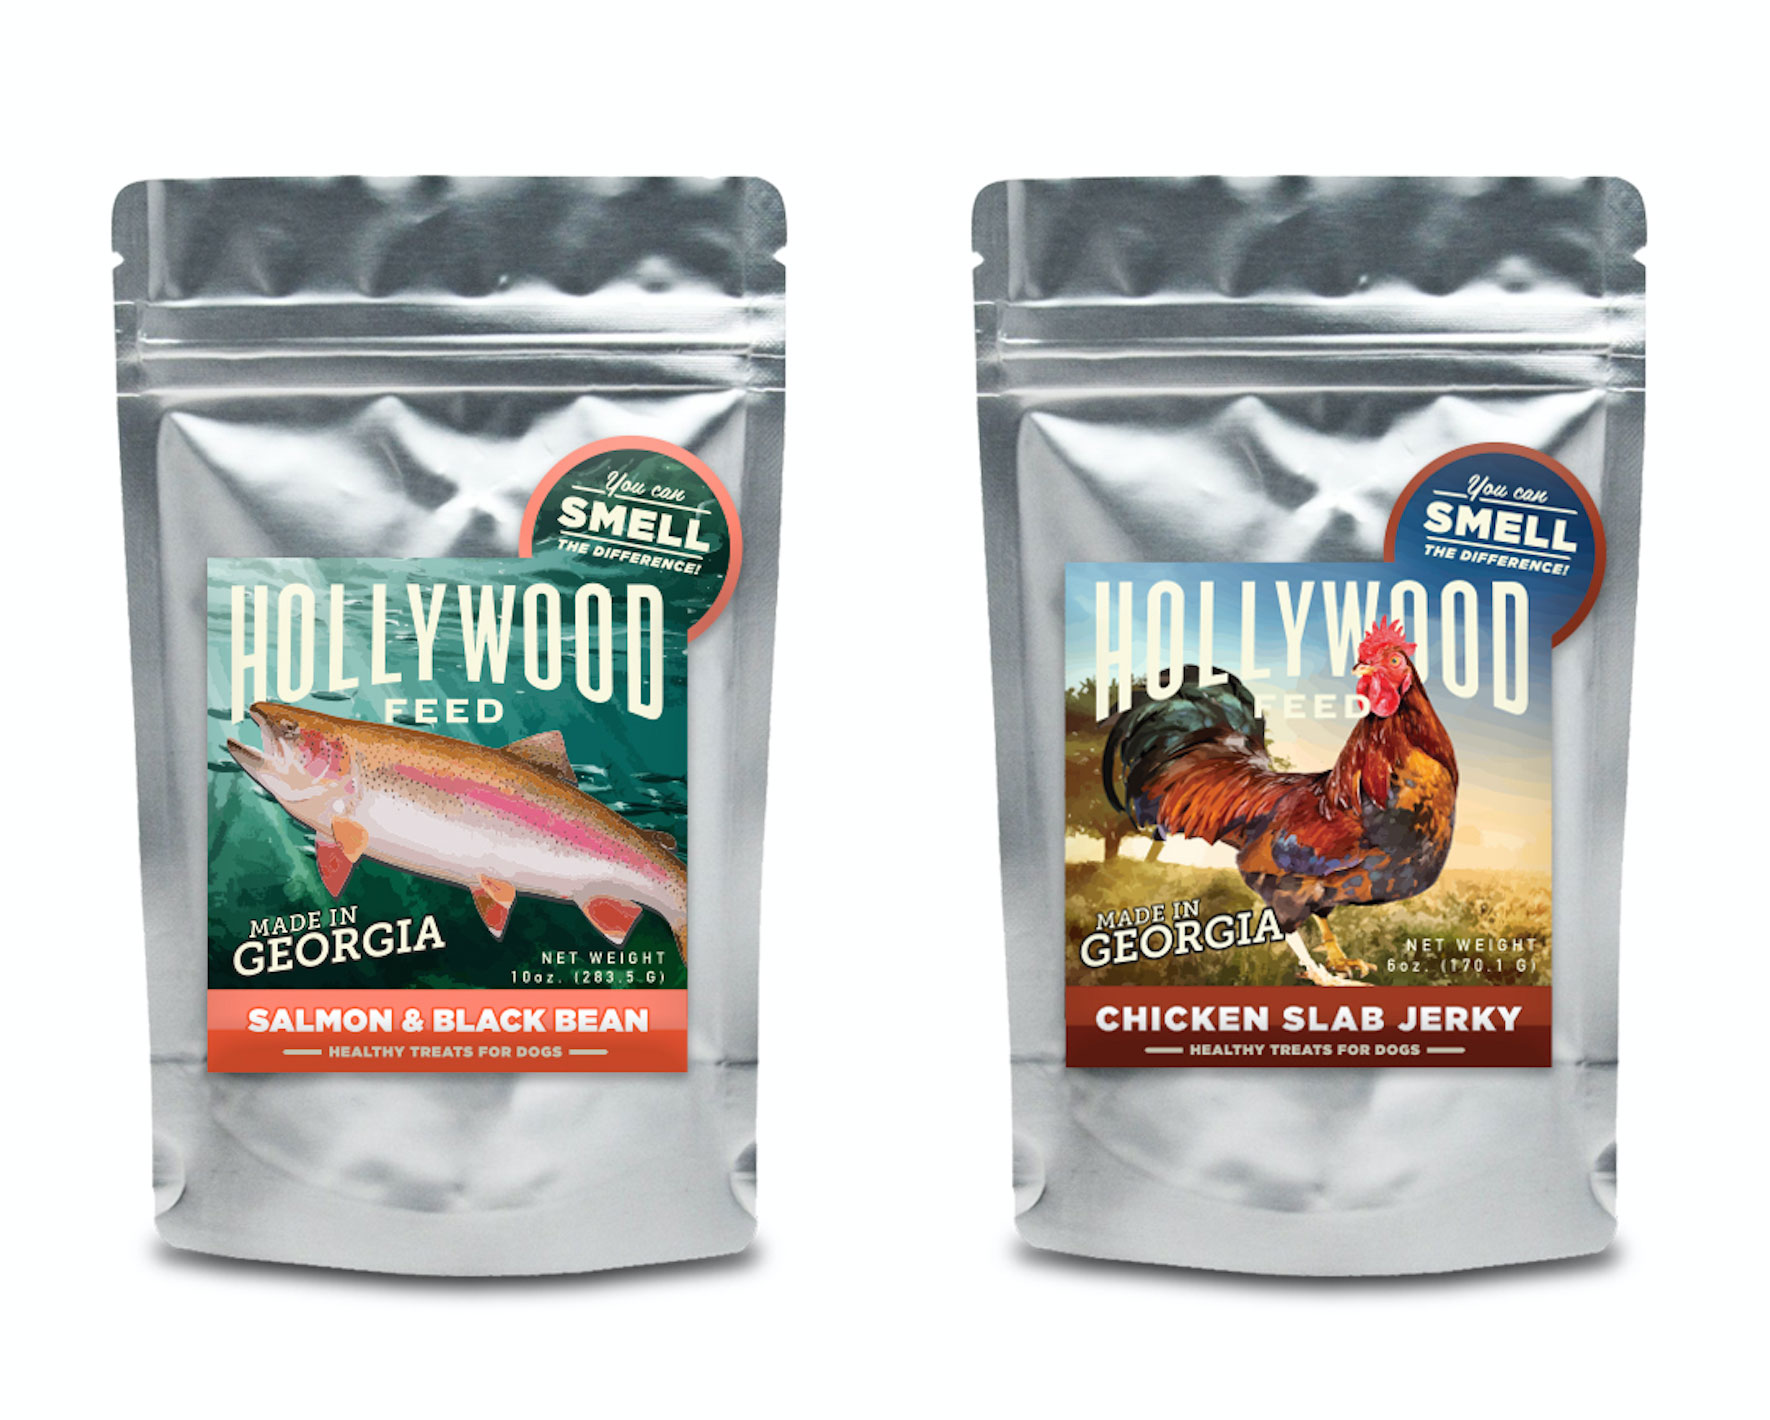 Label designs for Hollywood Feed dog treats